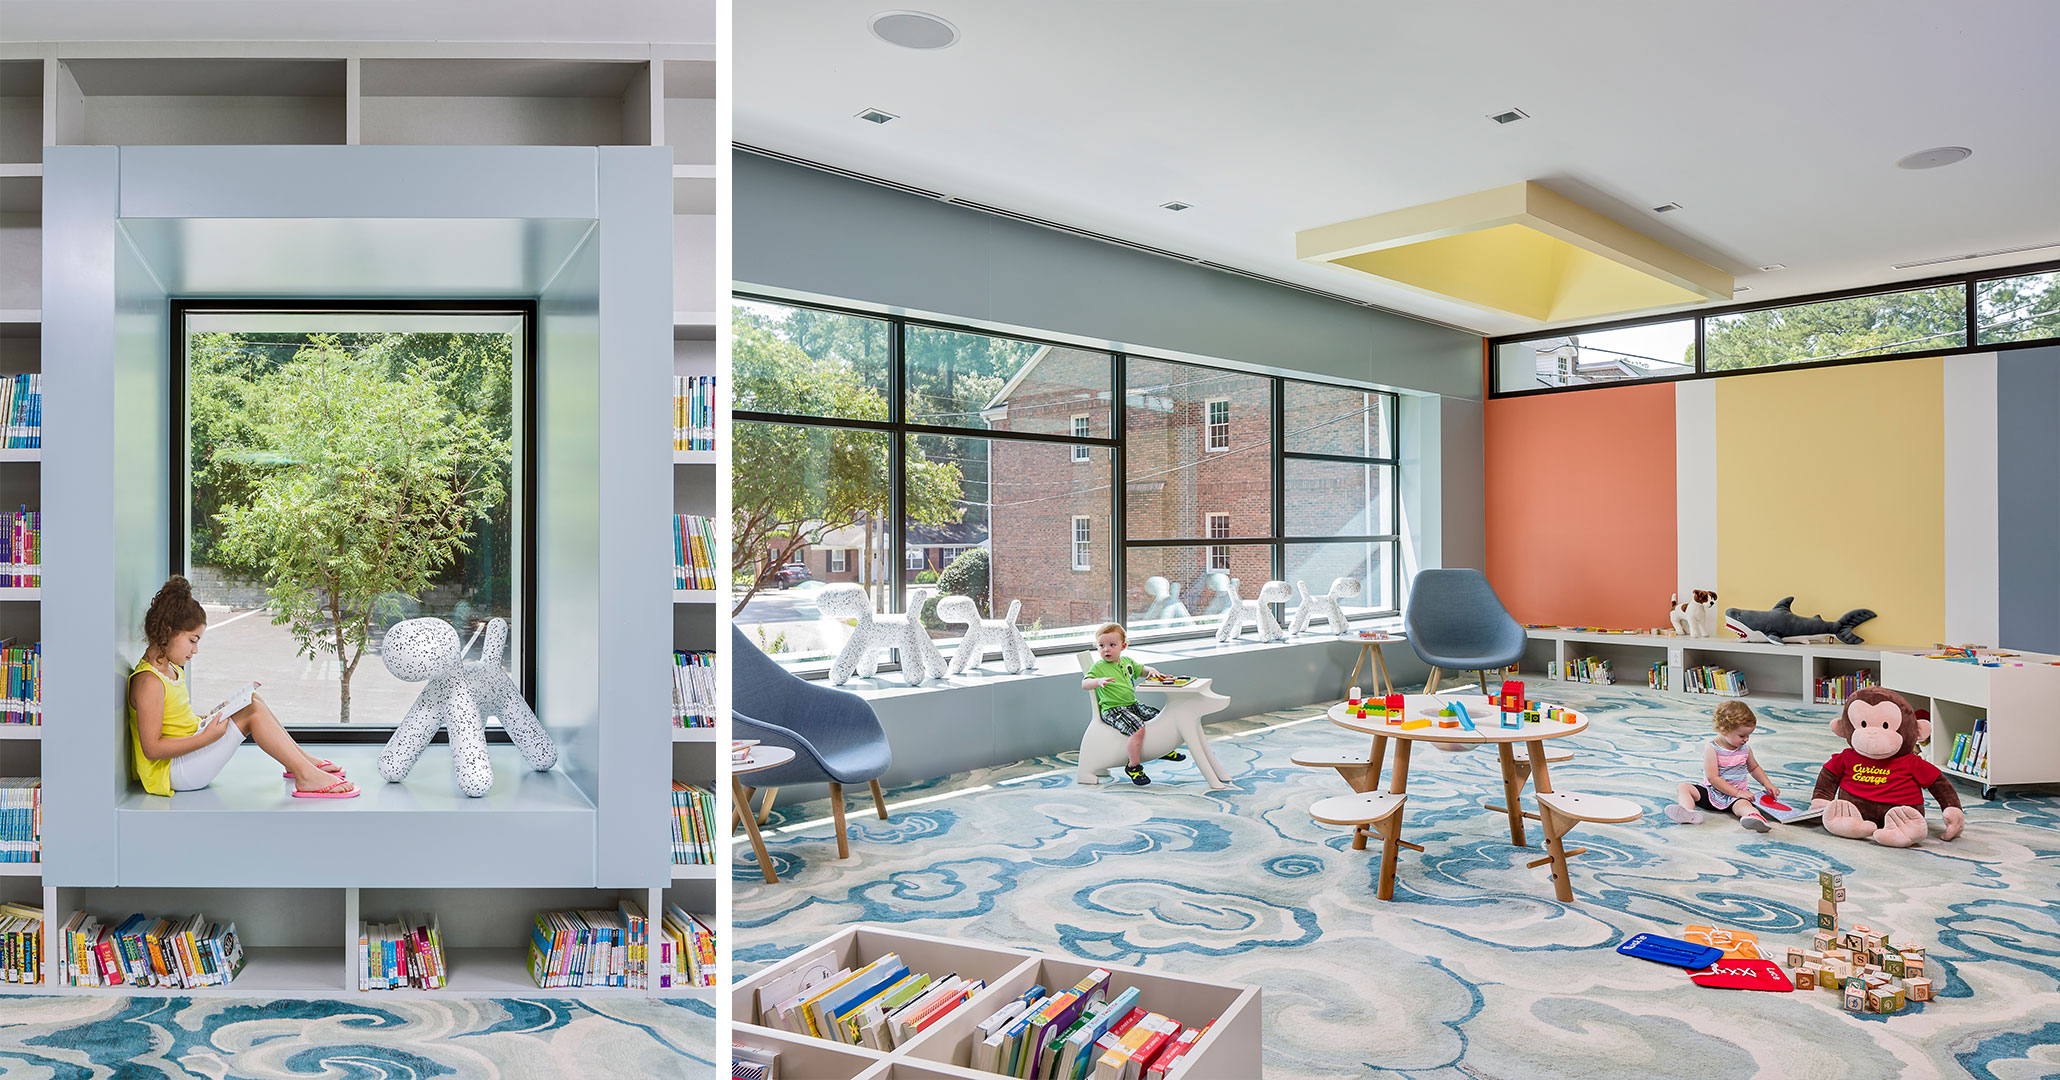 Richland County Library worked with Boudreaux architects to design flexible spaces.